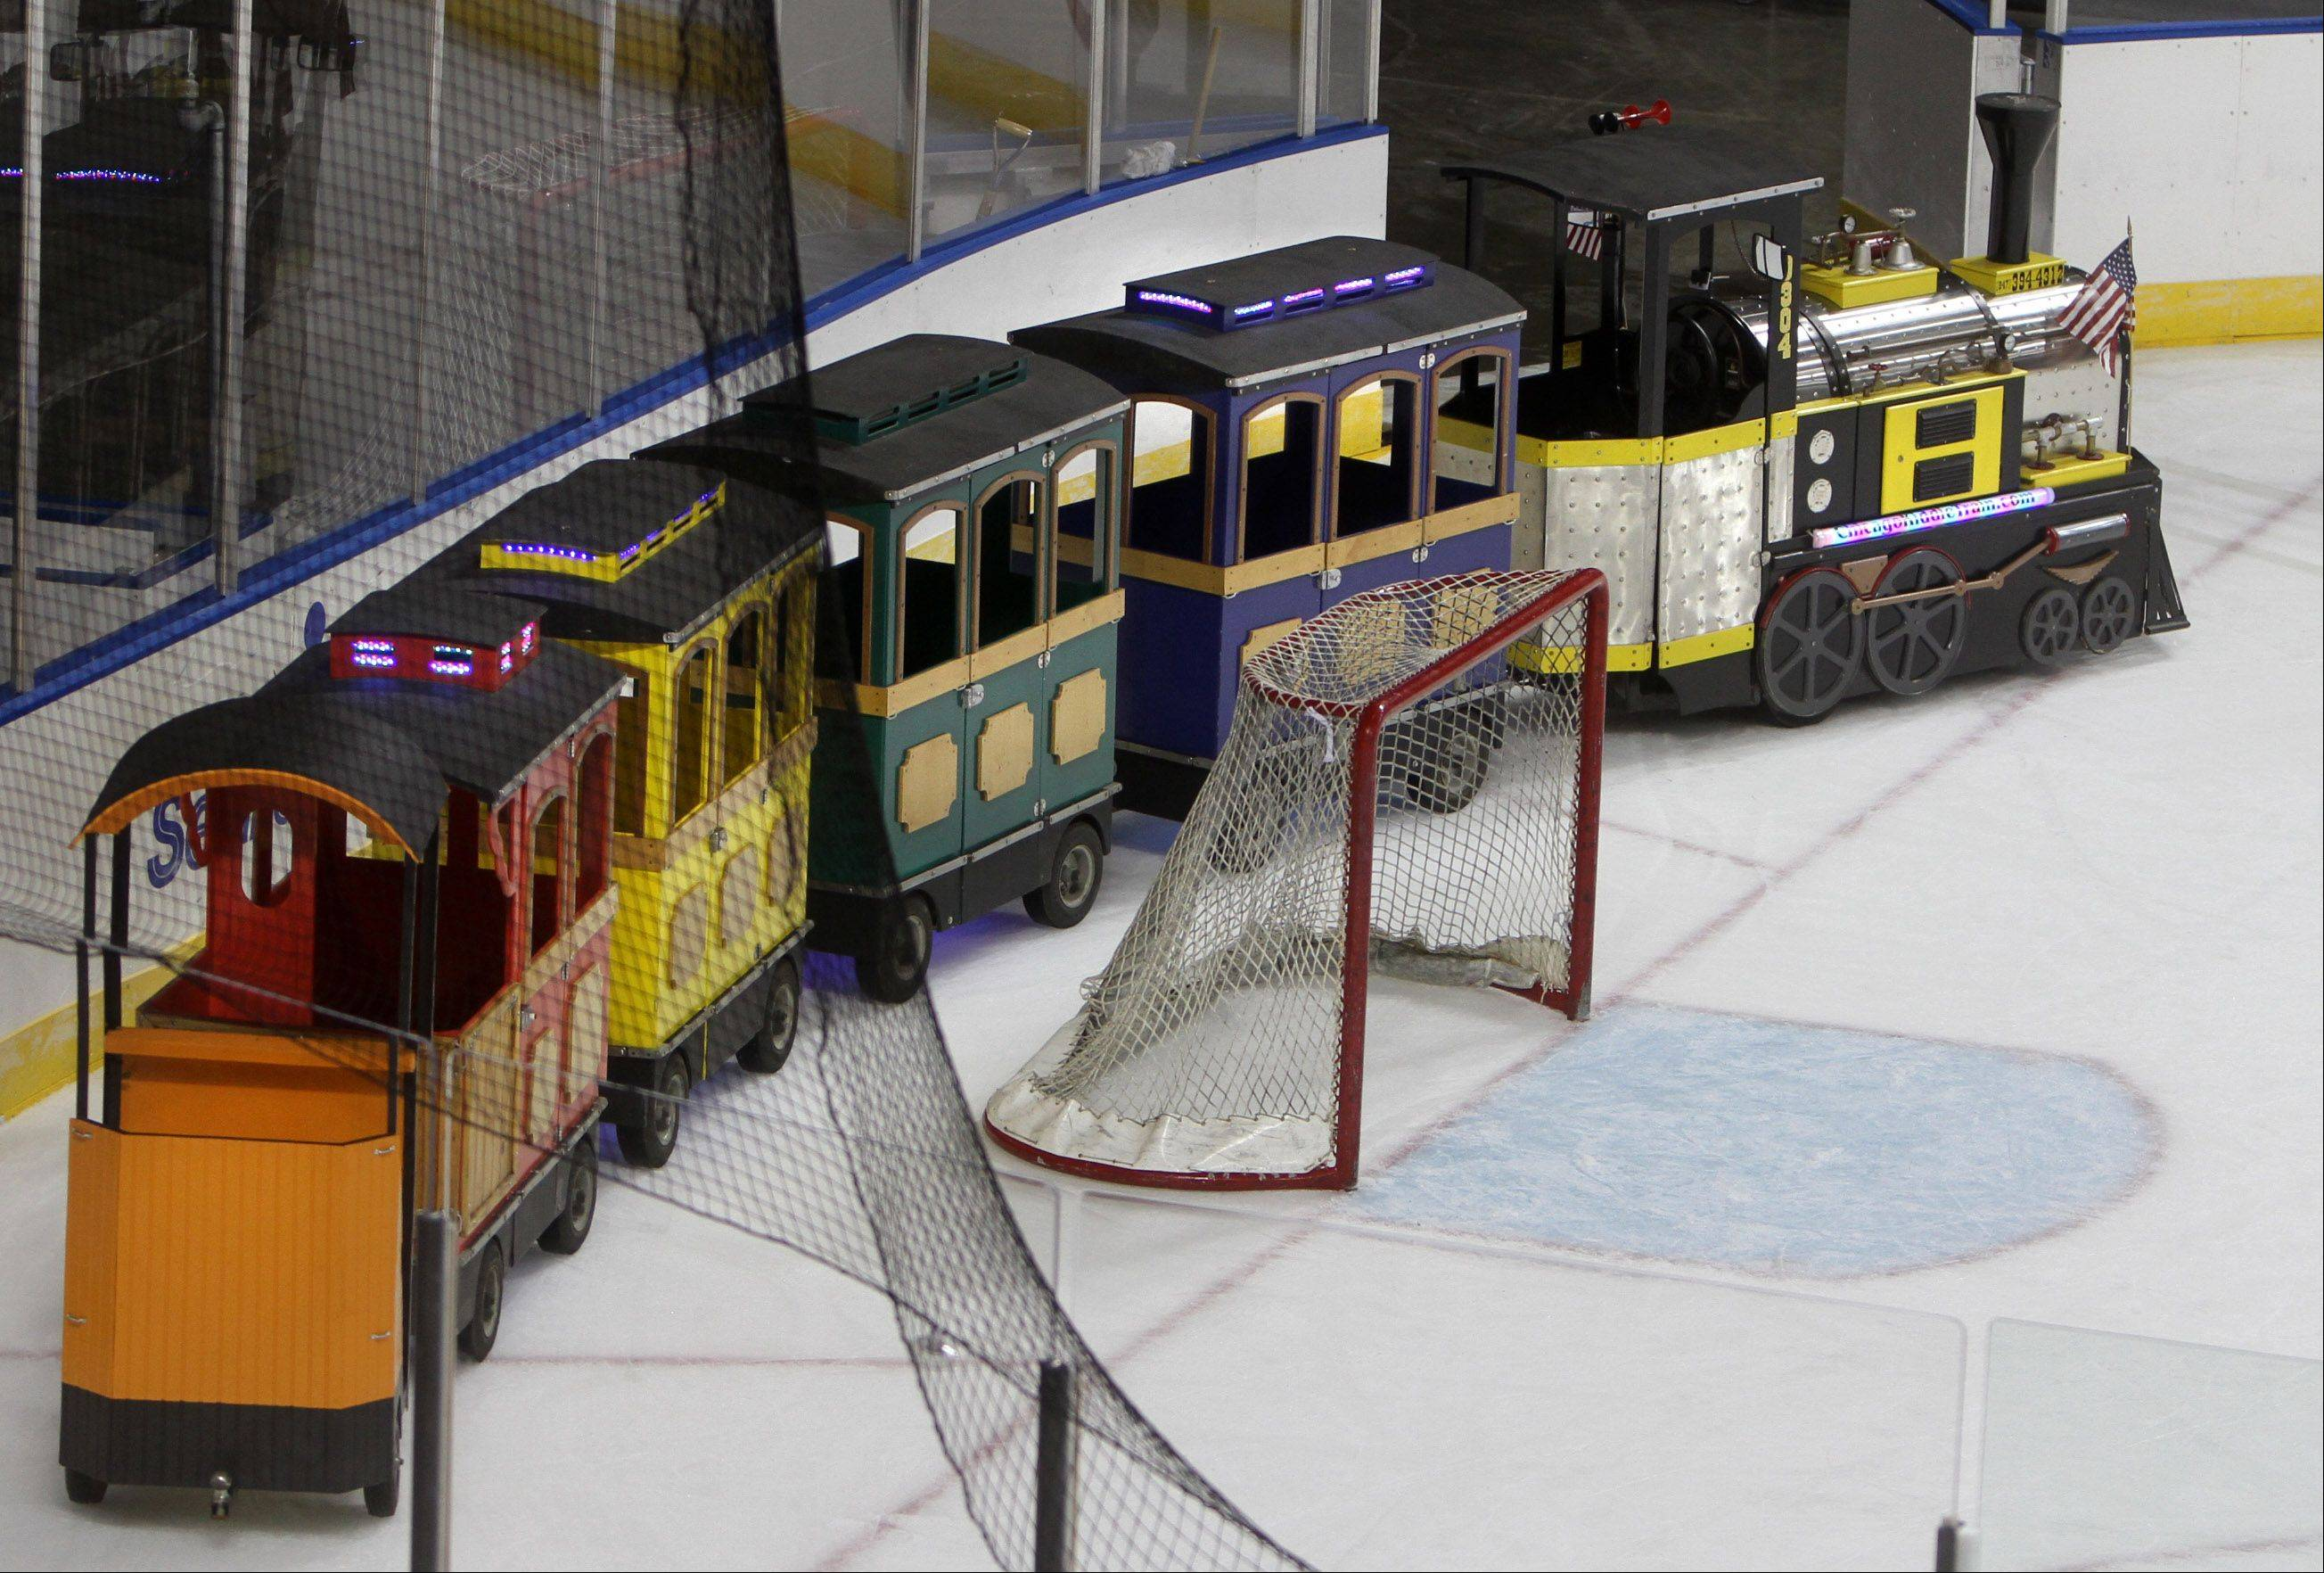 Kids will be able to ride a train around the ice before Chicago Express hockey games at the Sears Centre.